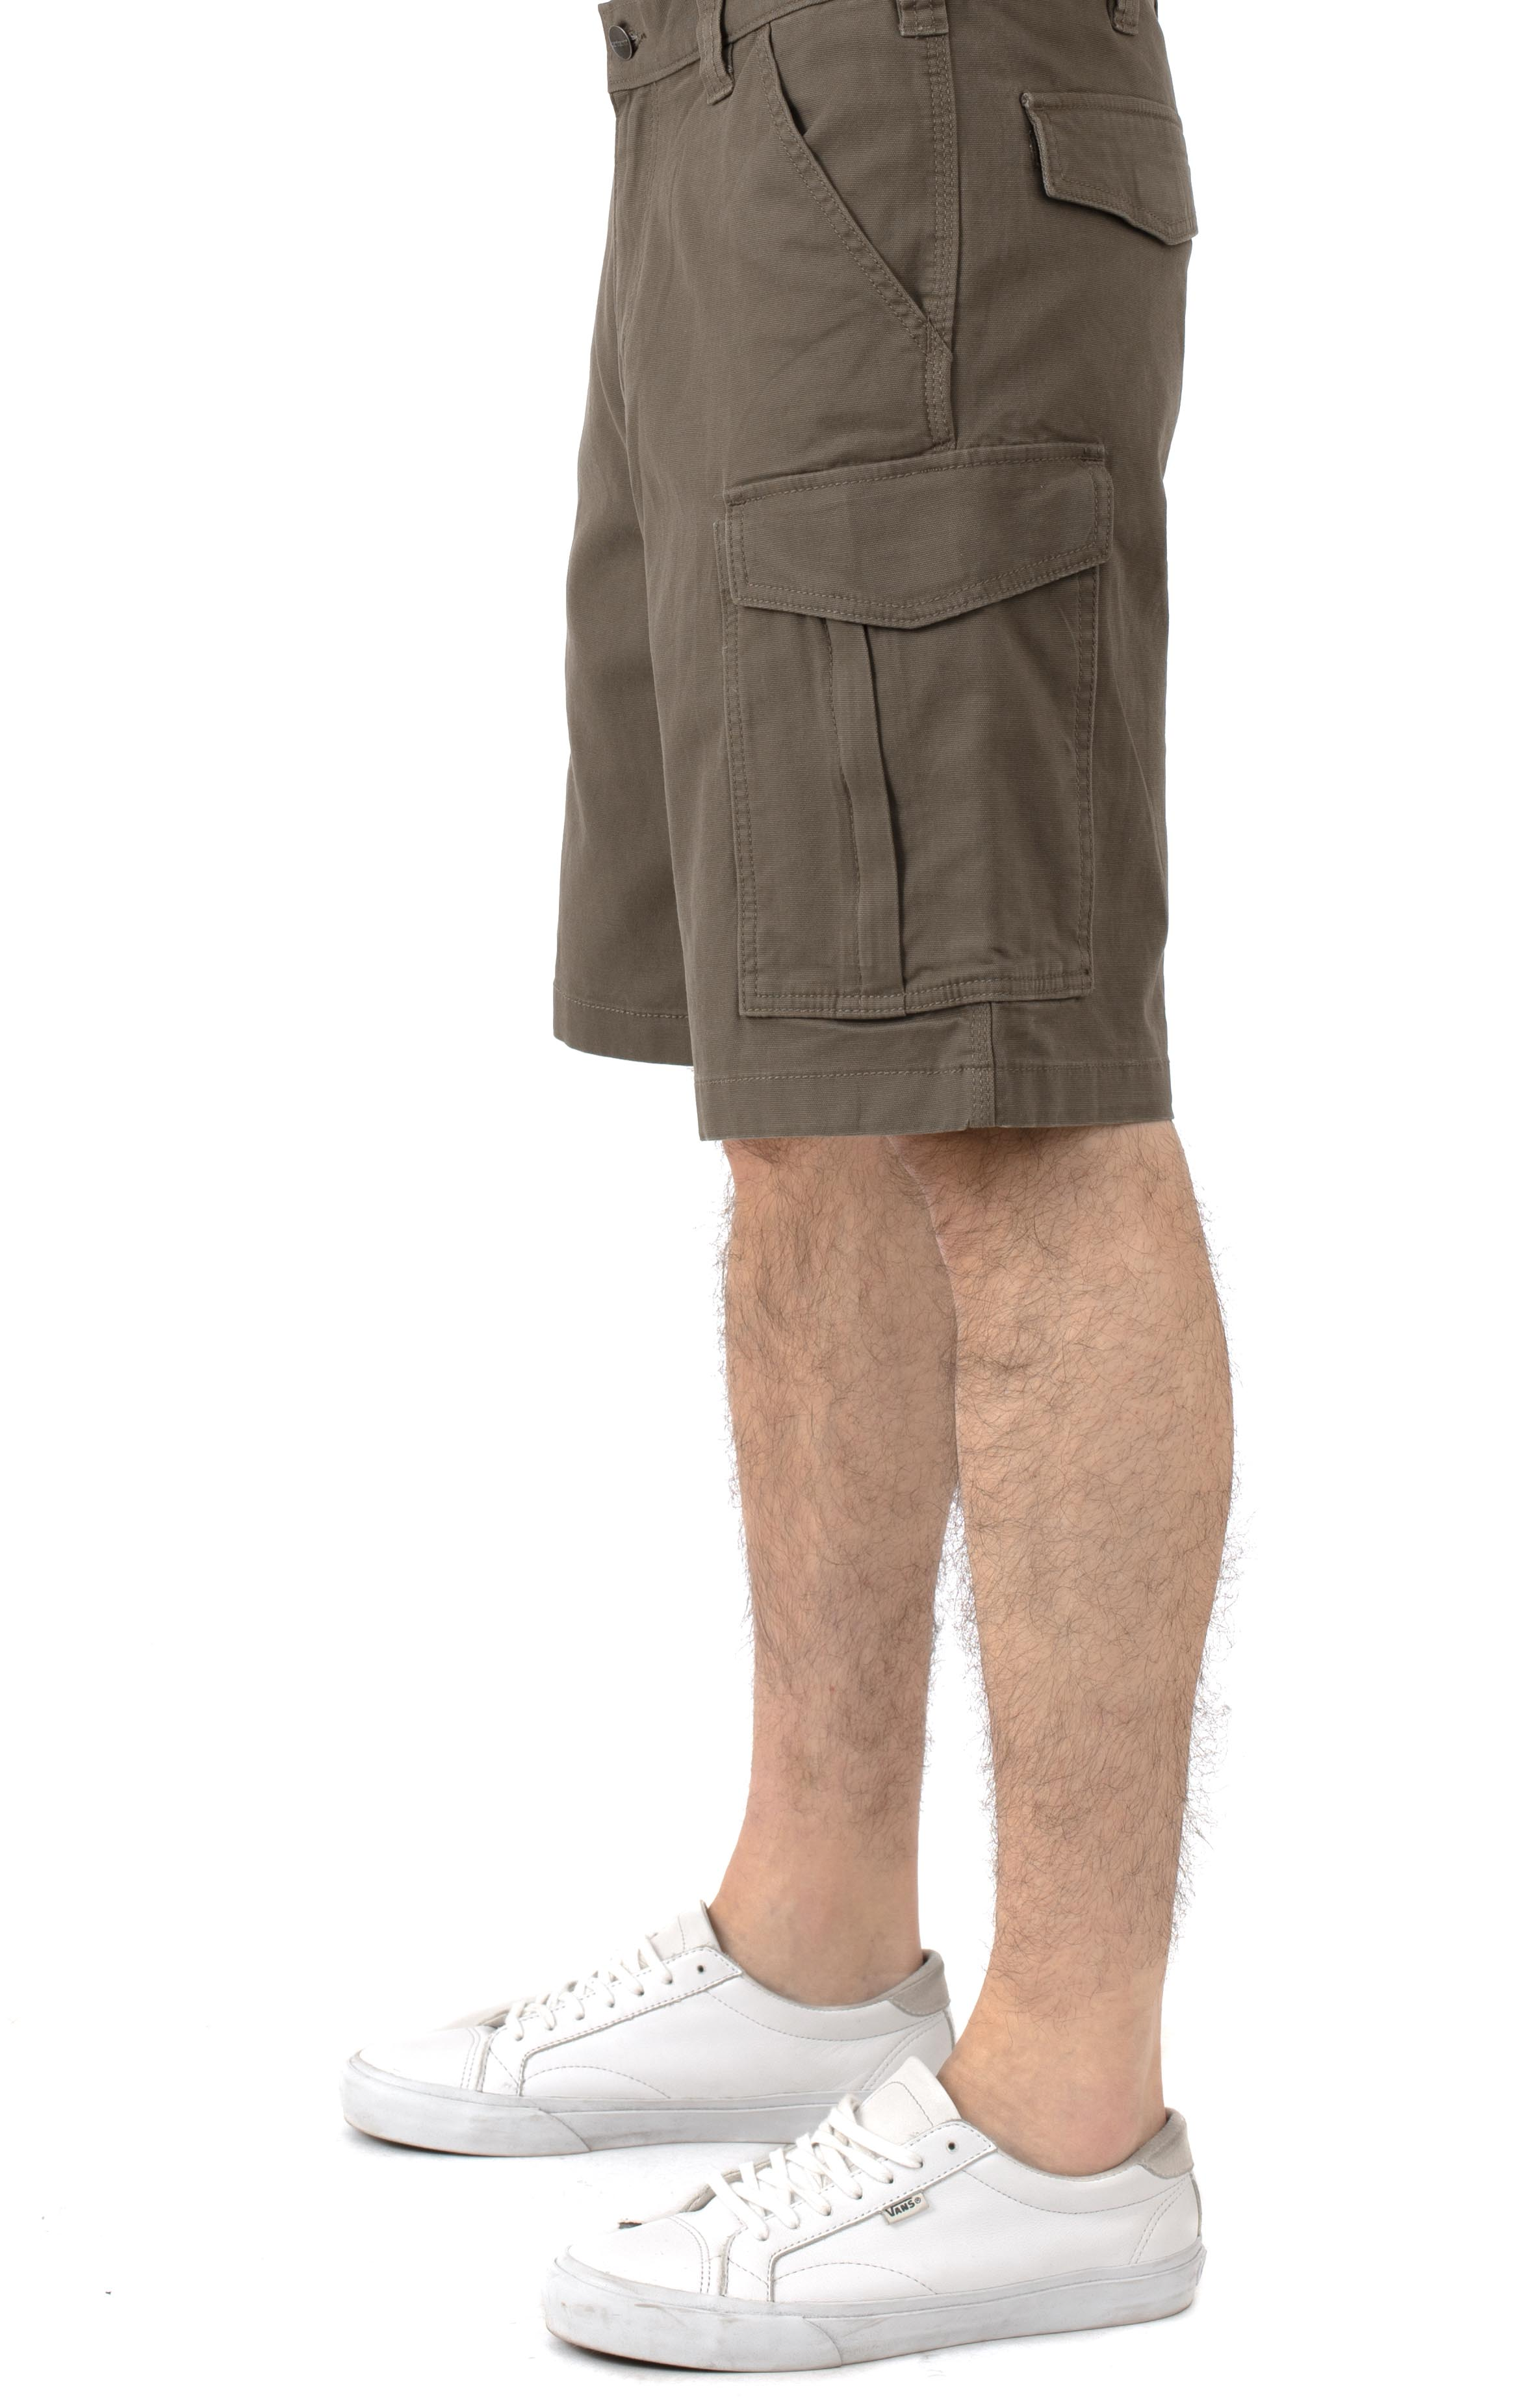 (103542) Rugged Flex Rigby Cargo Shorts - Tarmac